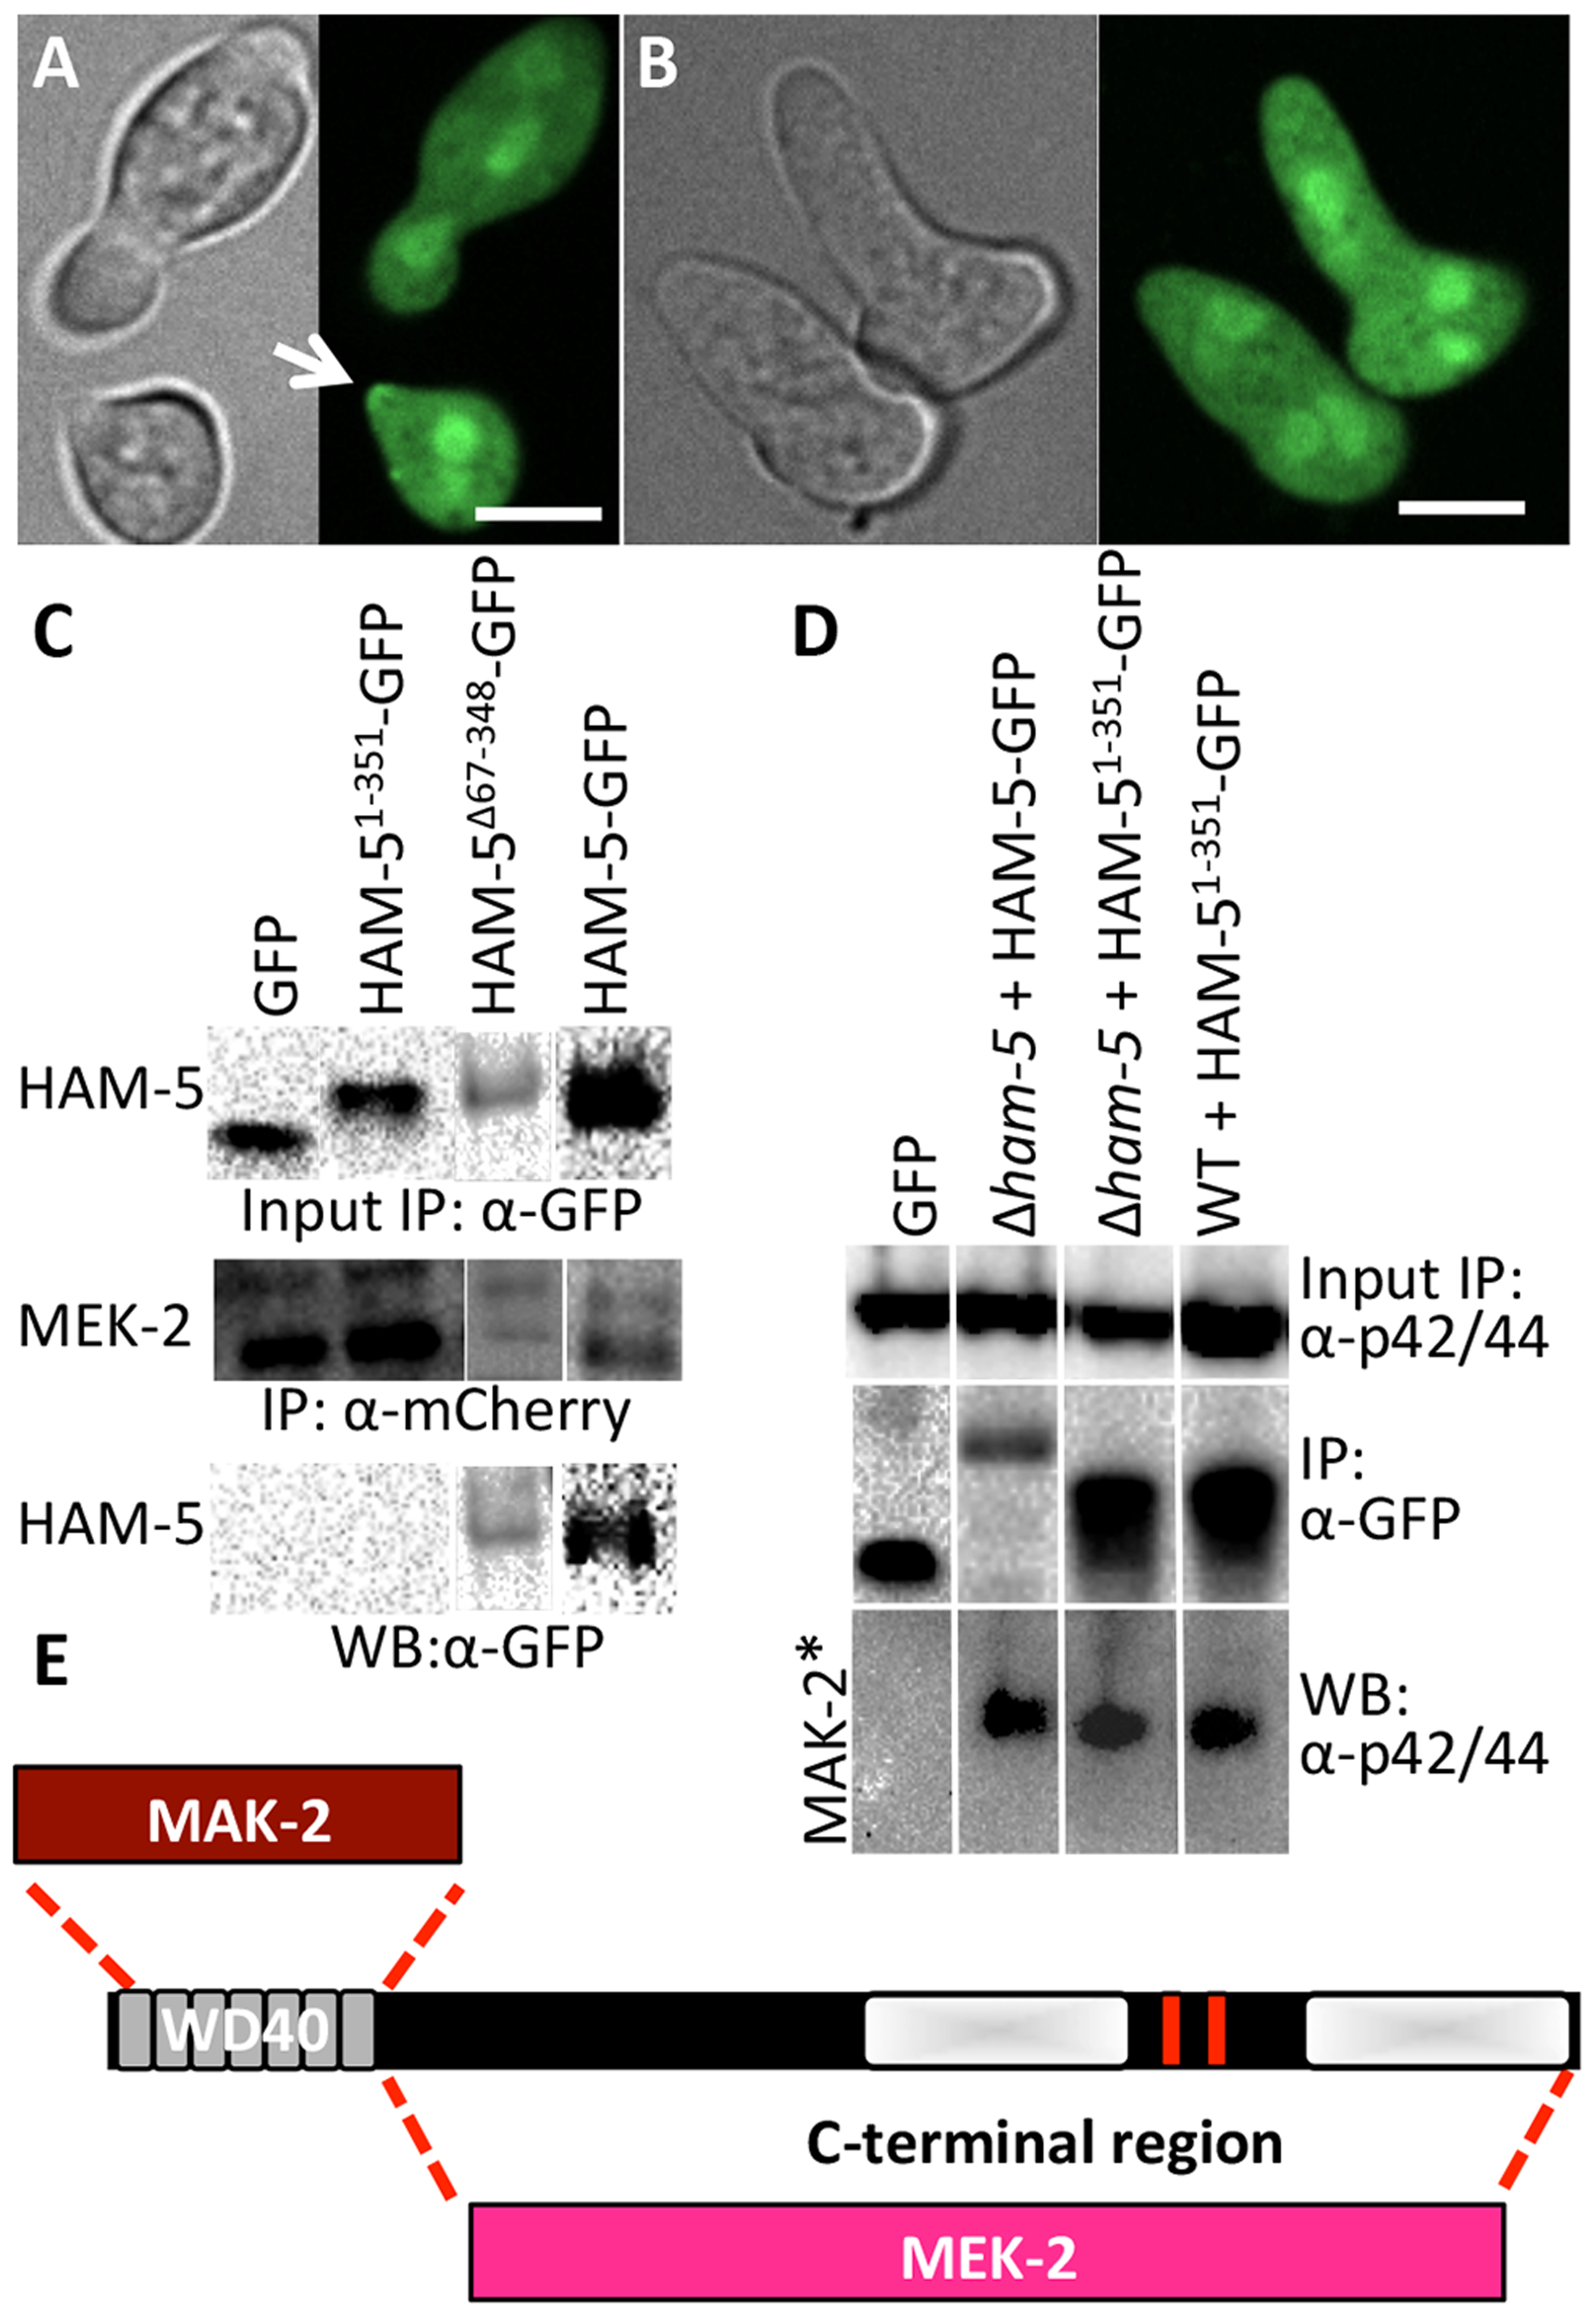 The WD40 domain of HAM-5 interacts with MAK-2, while the C-terminus interacts with MEK-2.